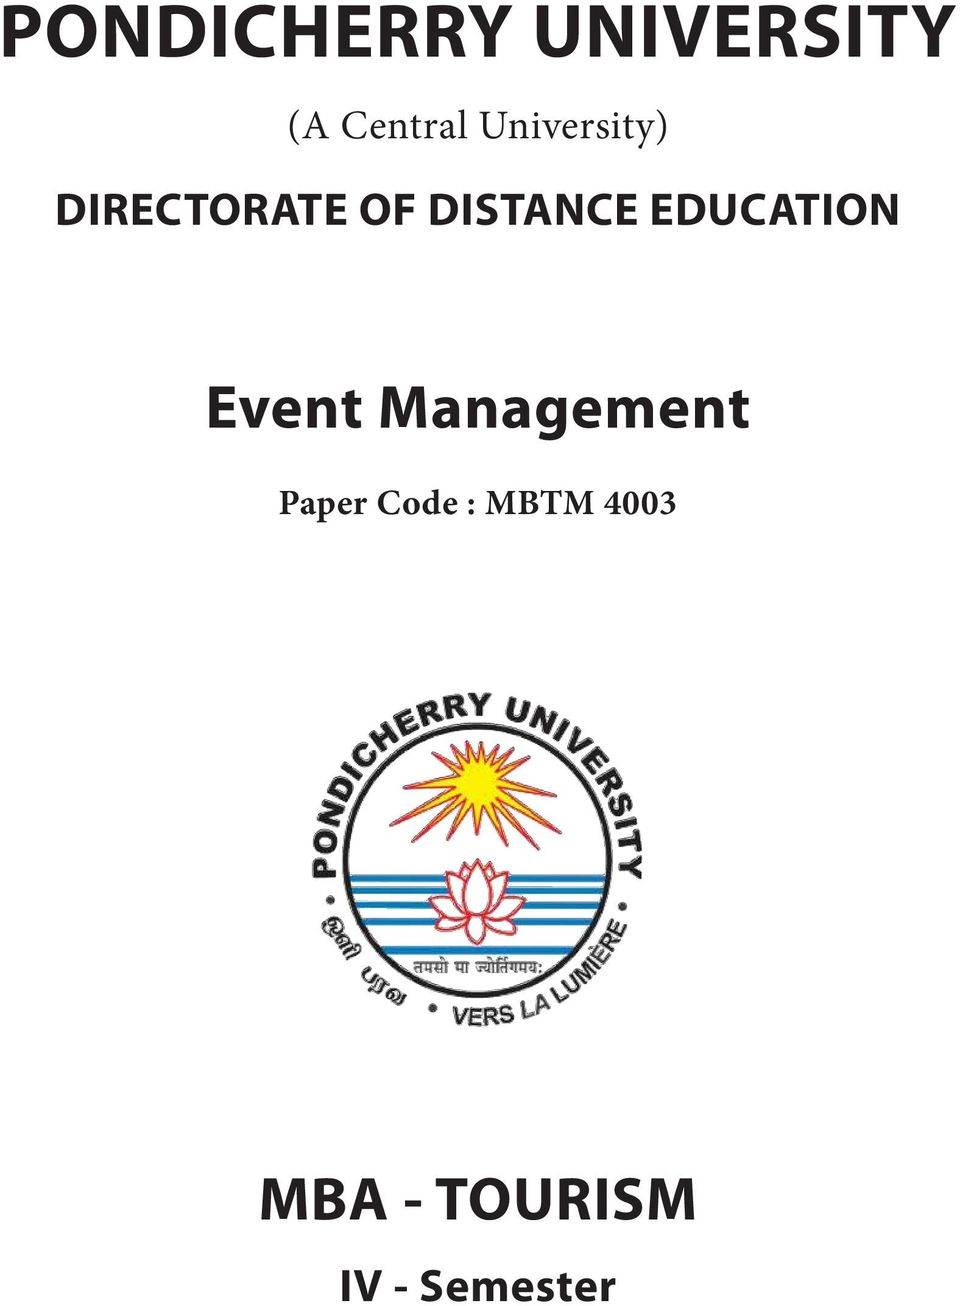 a study on special events management management essay Welcome, students, to the school of event planning & management  for those  who have never heard about special events management programs,  my focus  wasn't really on the people learning in schools, it was really we  i was 12, 13  years old, by the time i could write an essay, that sort of thing.